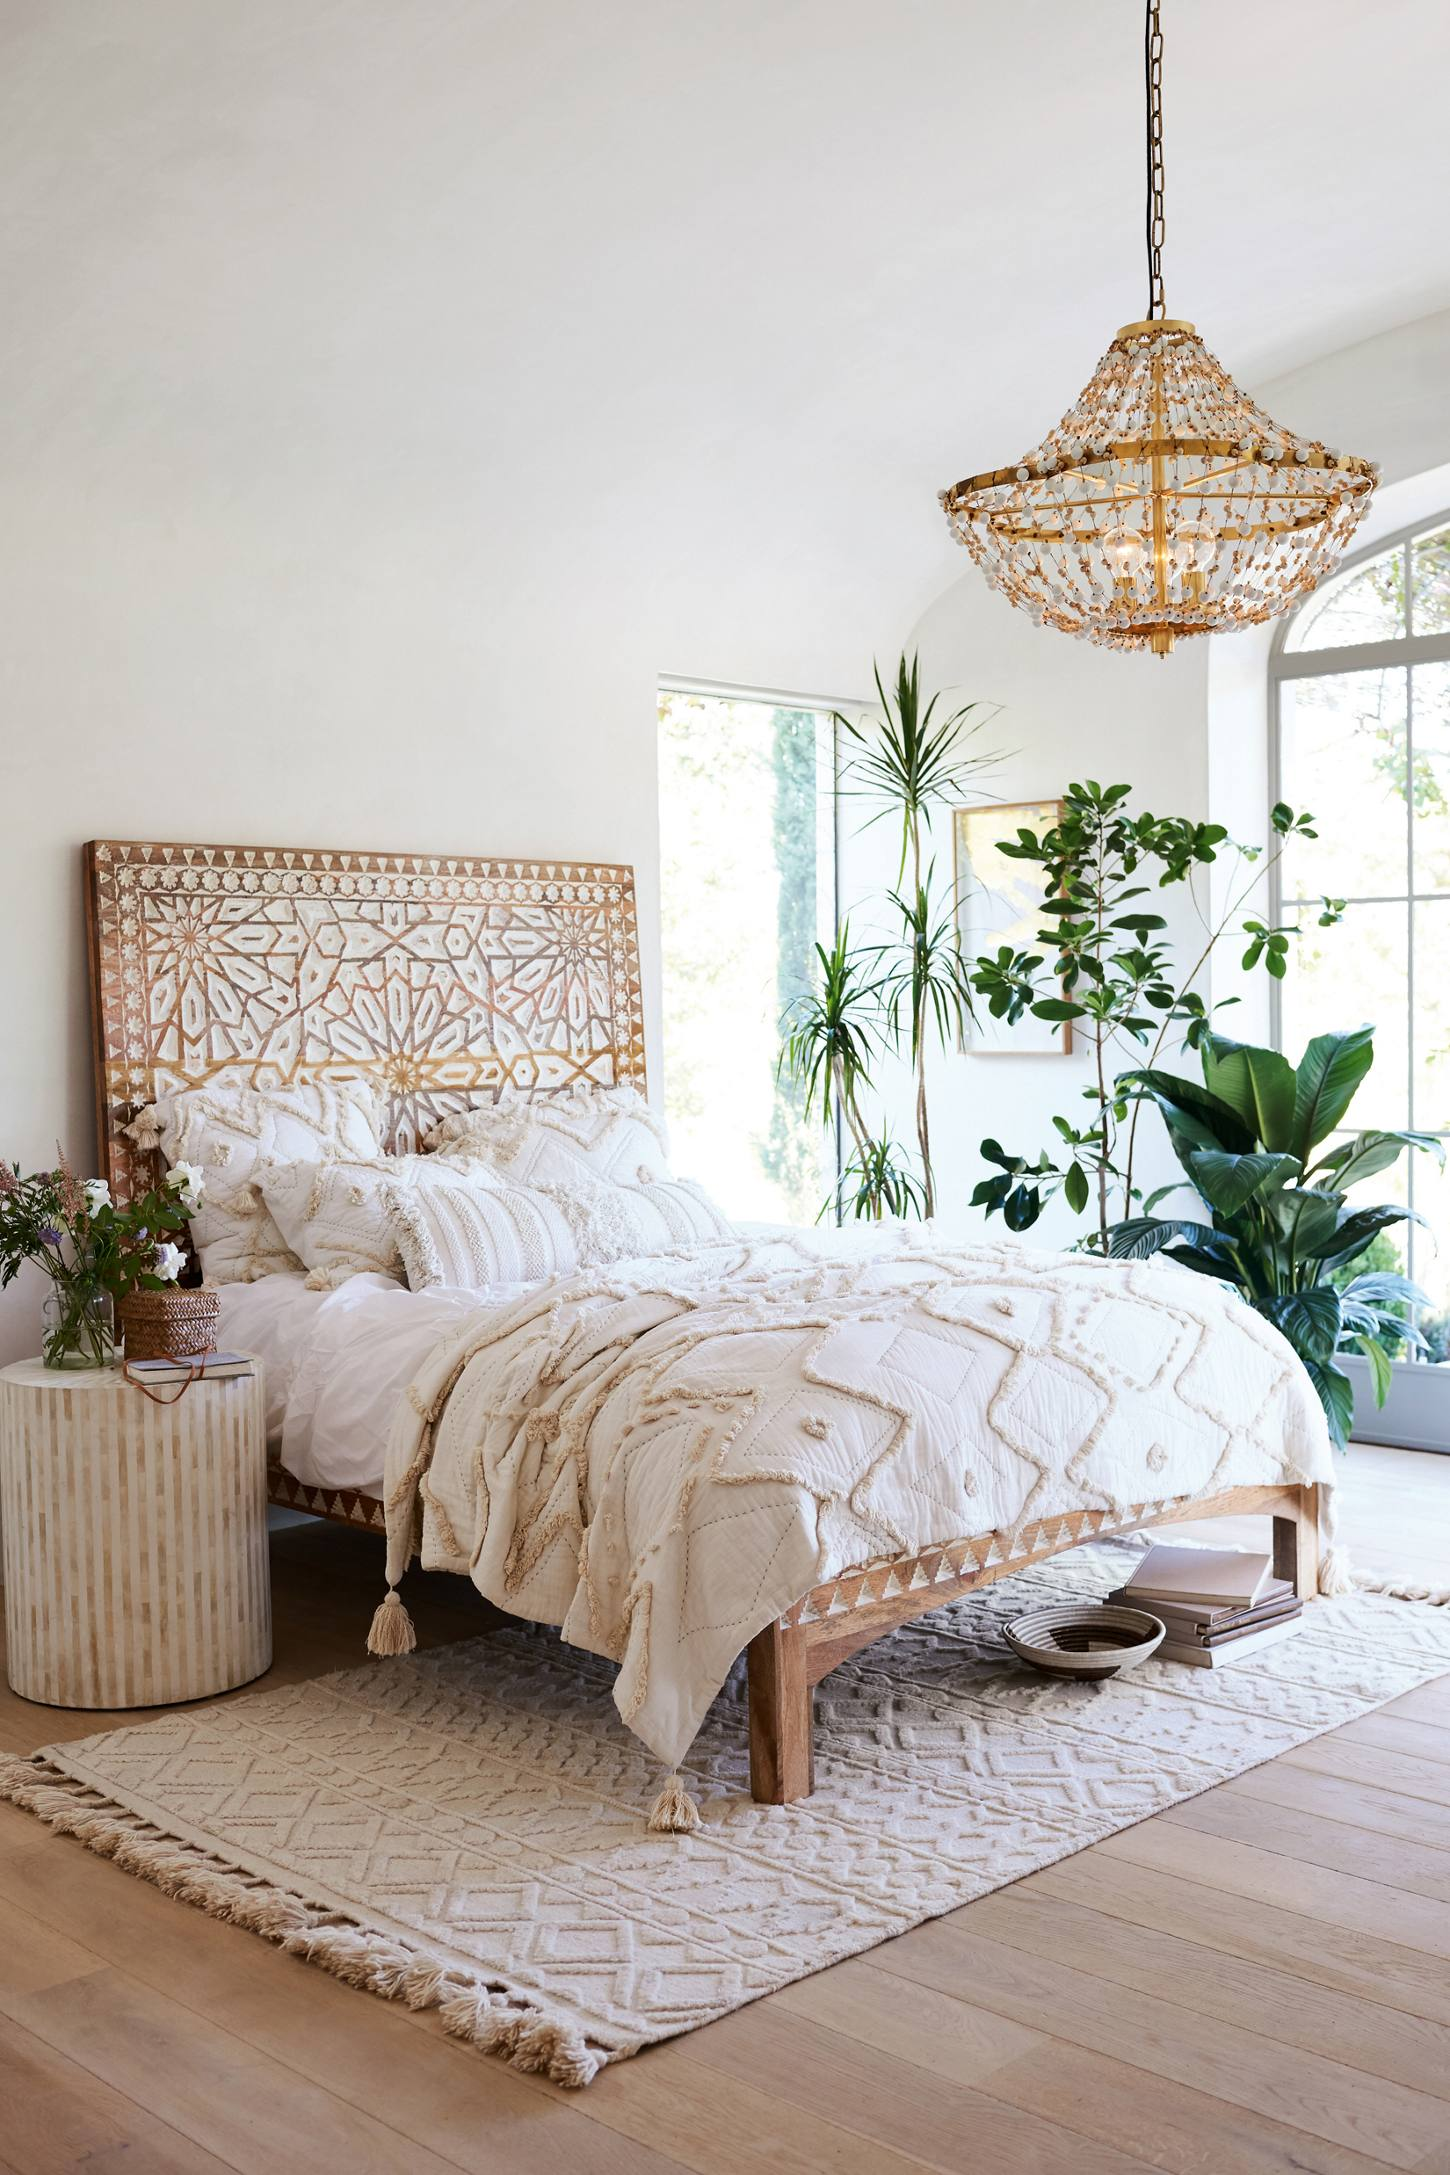 Bohemian Boho Bedroom Inspiration Cream Cozy Bedding Intricate Floral Headboard